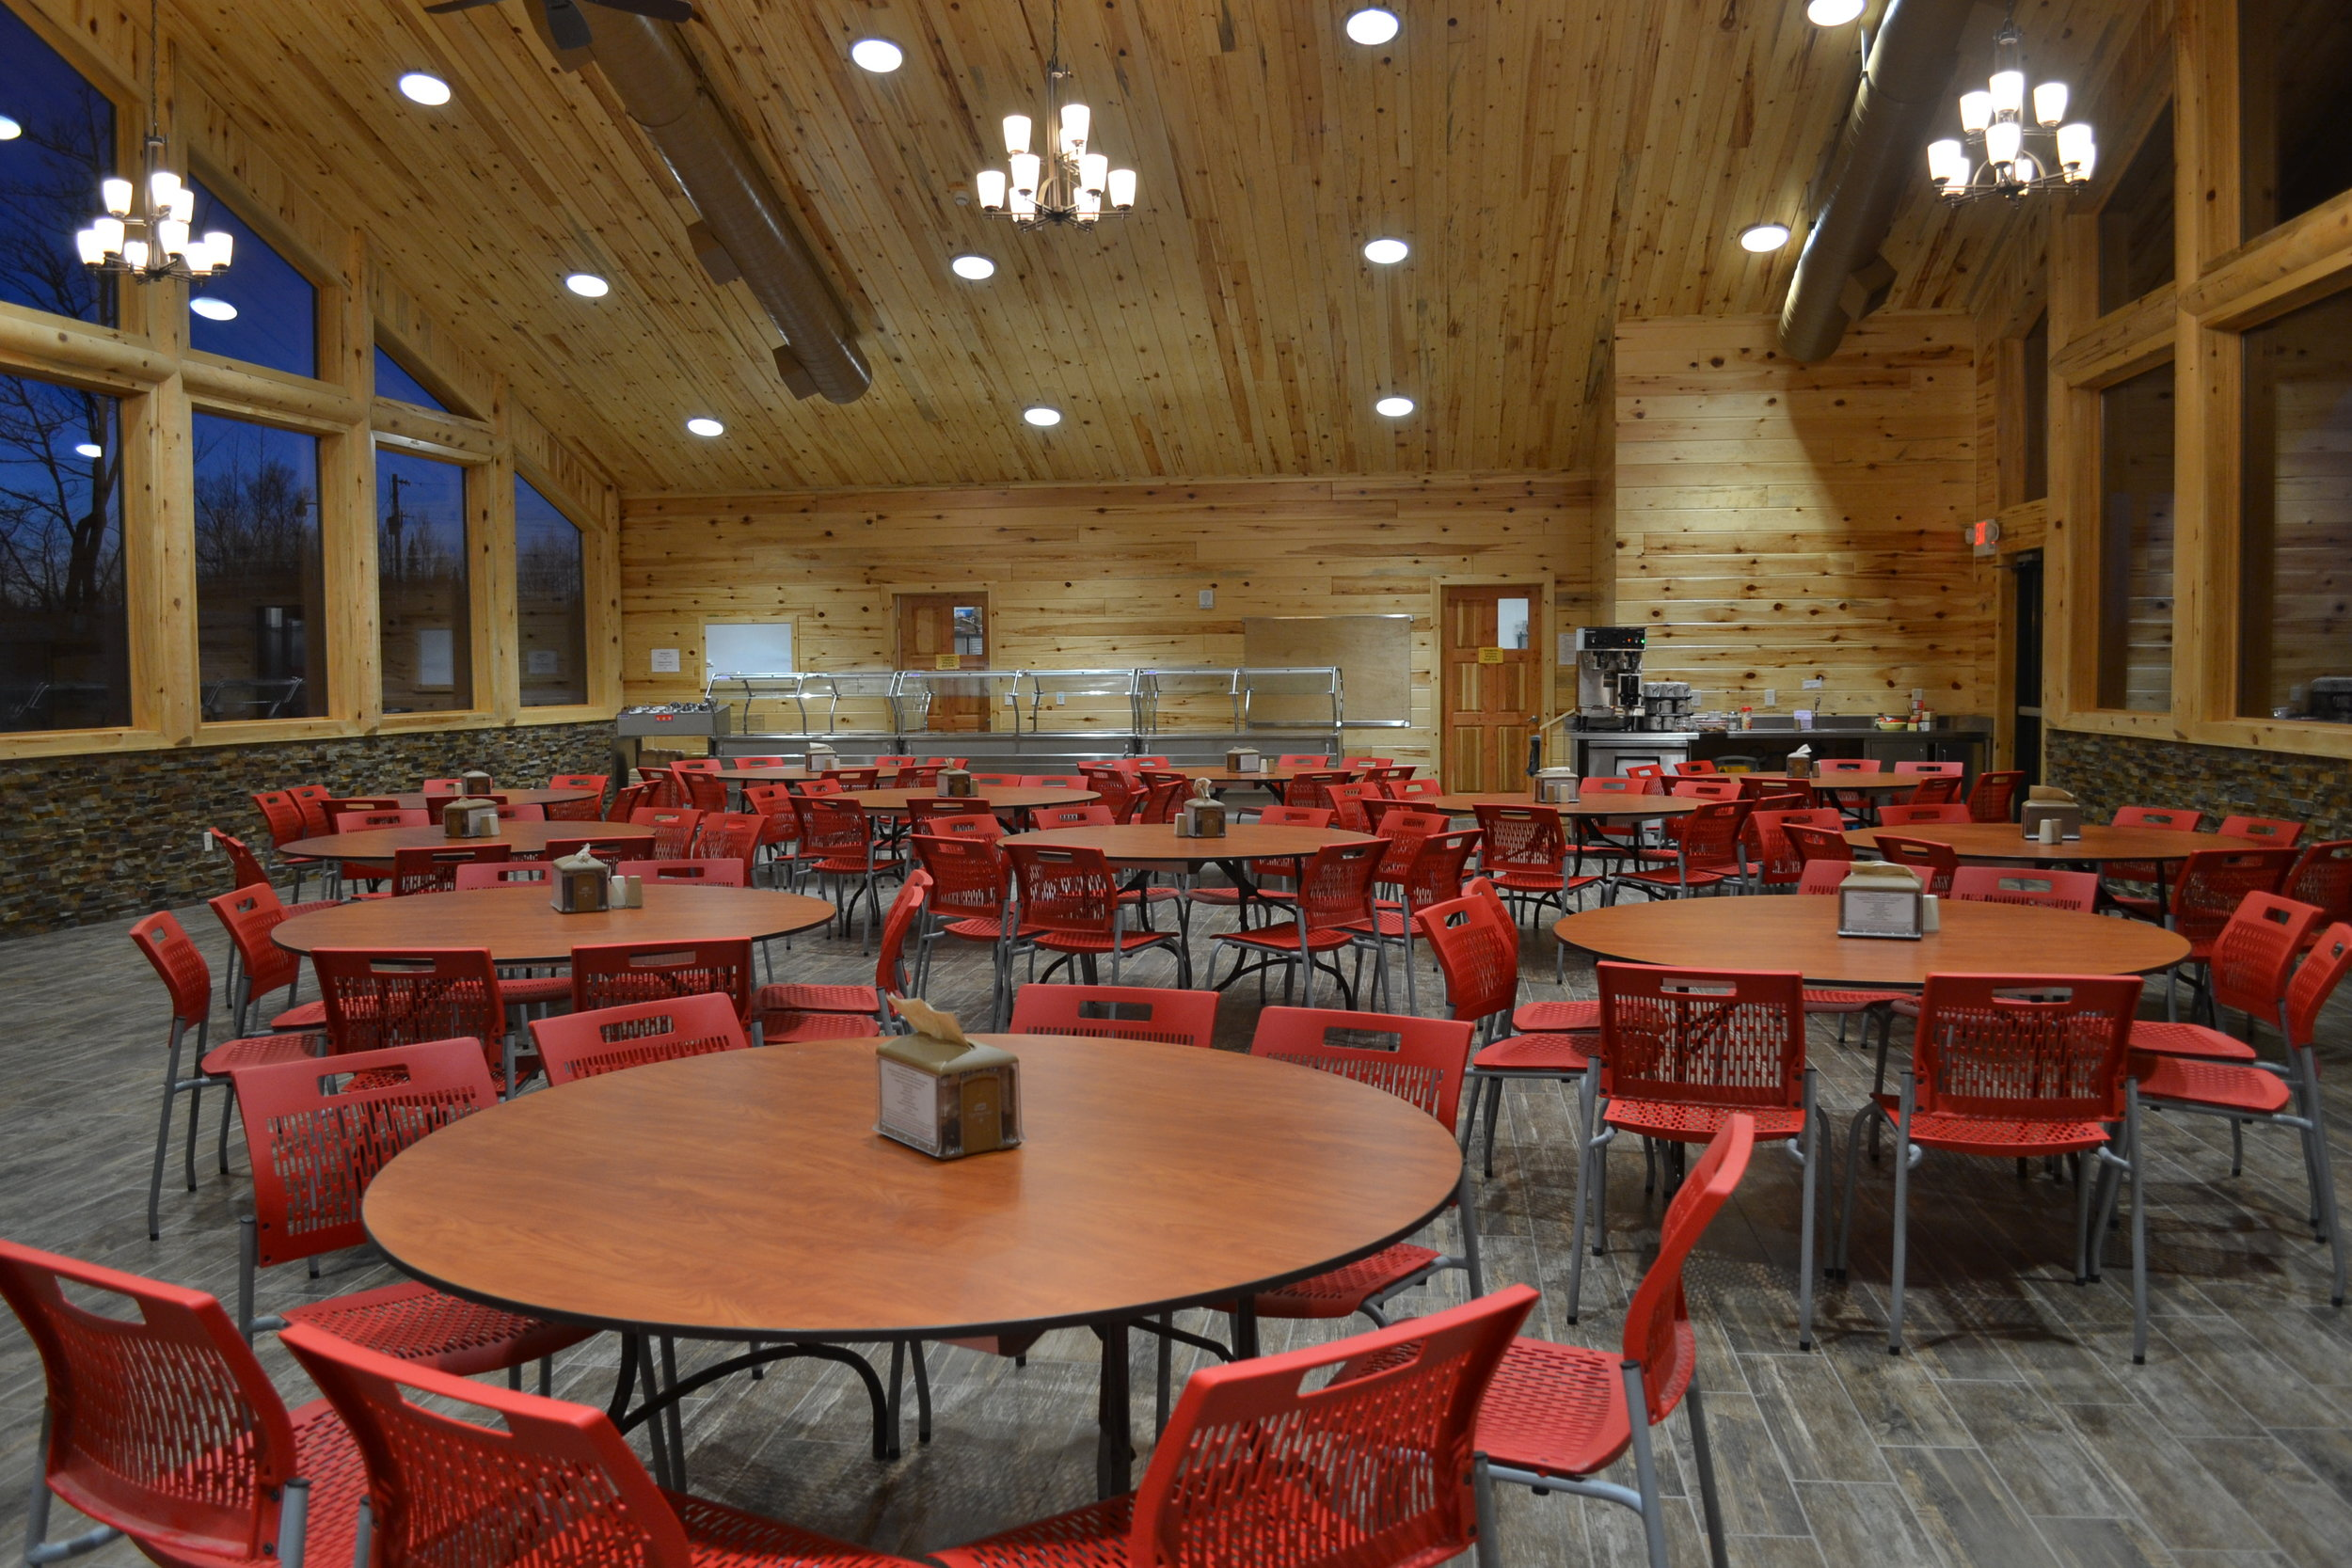 Dining hall at Camp Vermilion